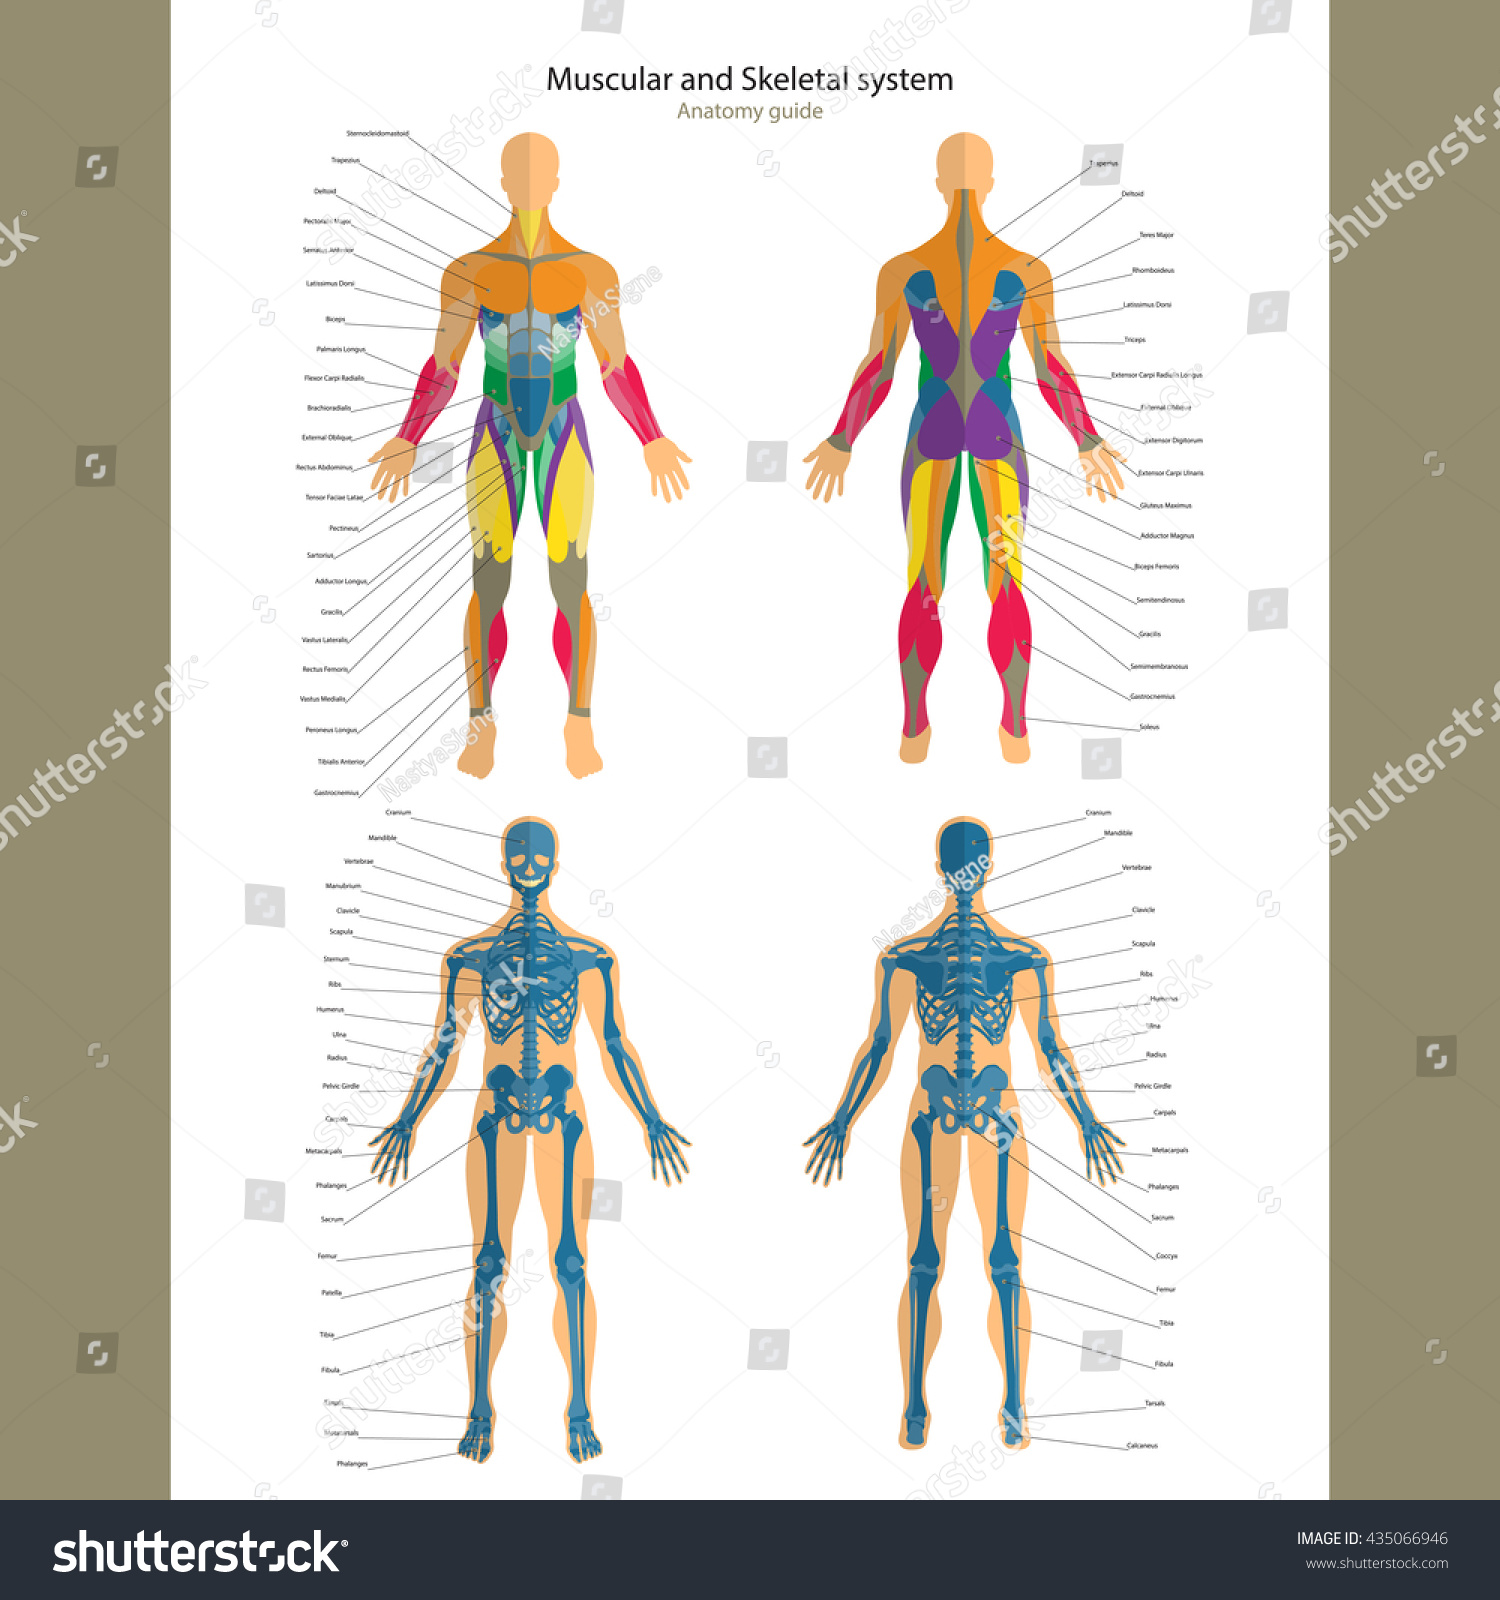 Anatomy Guide Male Skeleton Muscular System Stock Vector